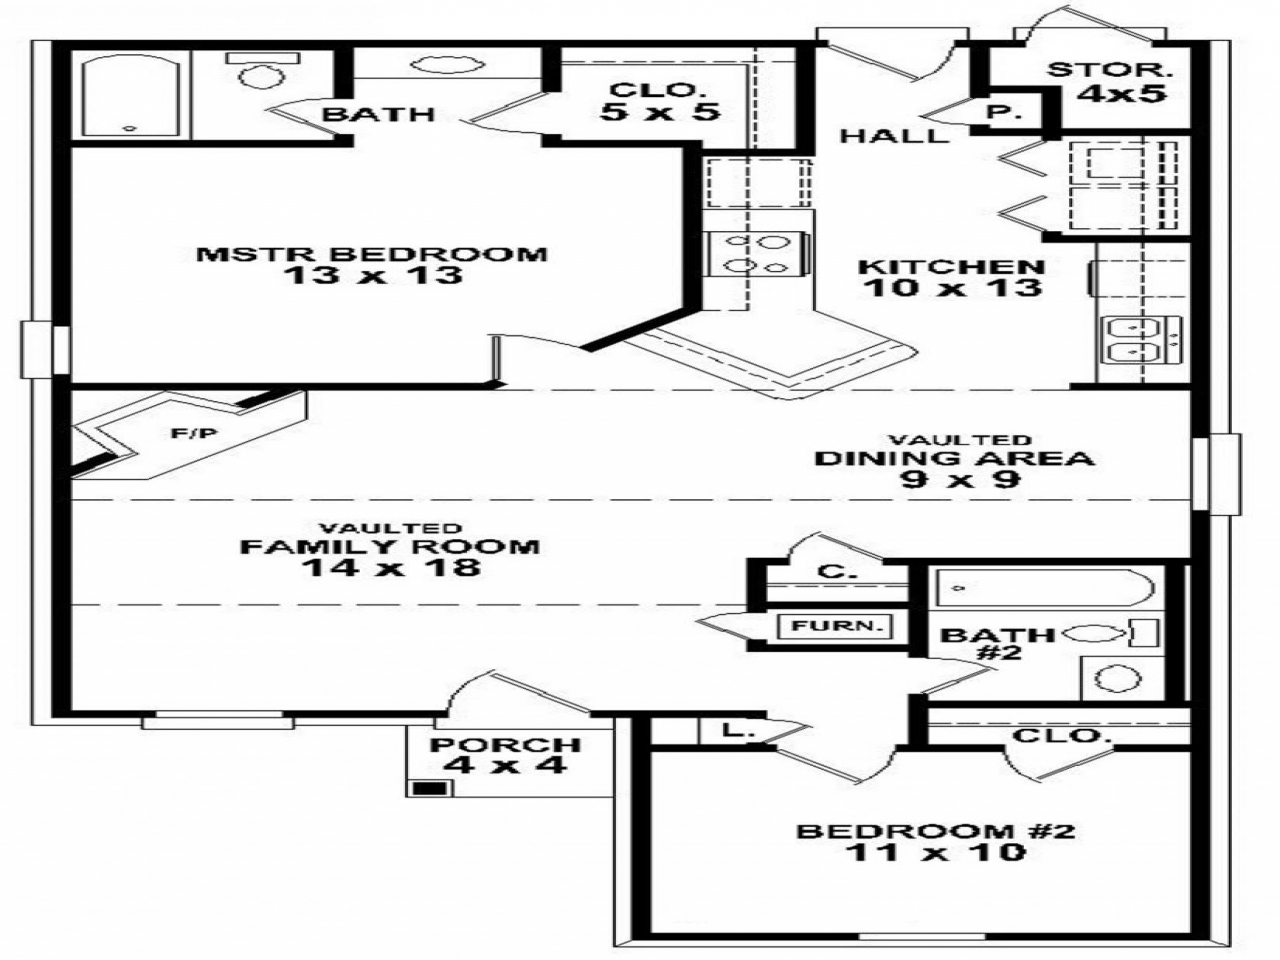 Simple 2 bedroom house floor plans small two bedroom house for Simple 1 bedroom house plans